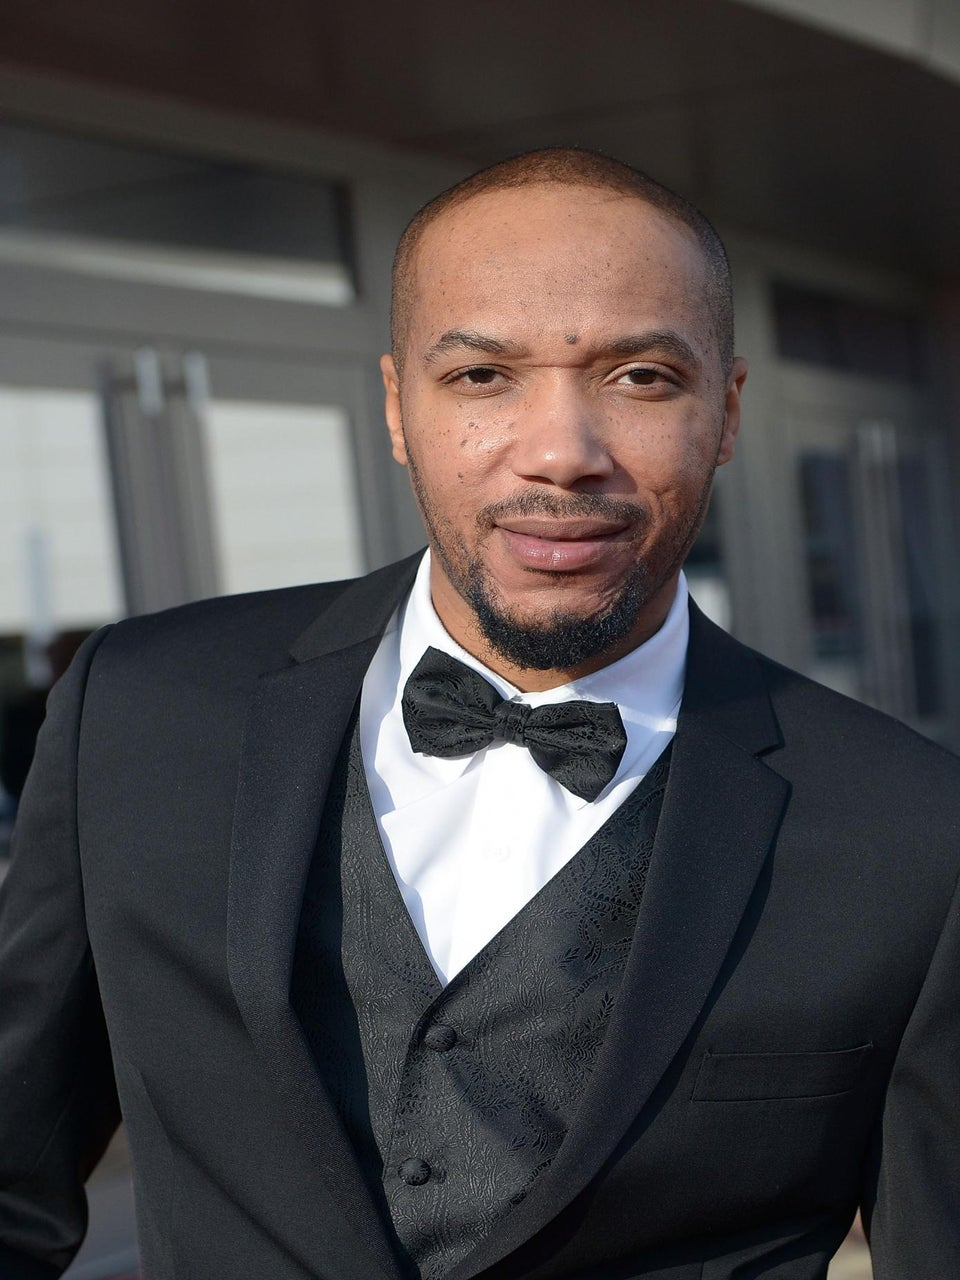 Real Talk with Lyfe Jennings on His New Album, Monogamy, Stripper Worship in R&B